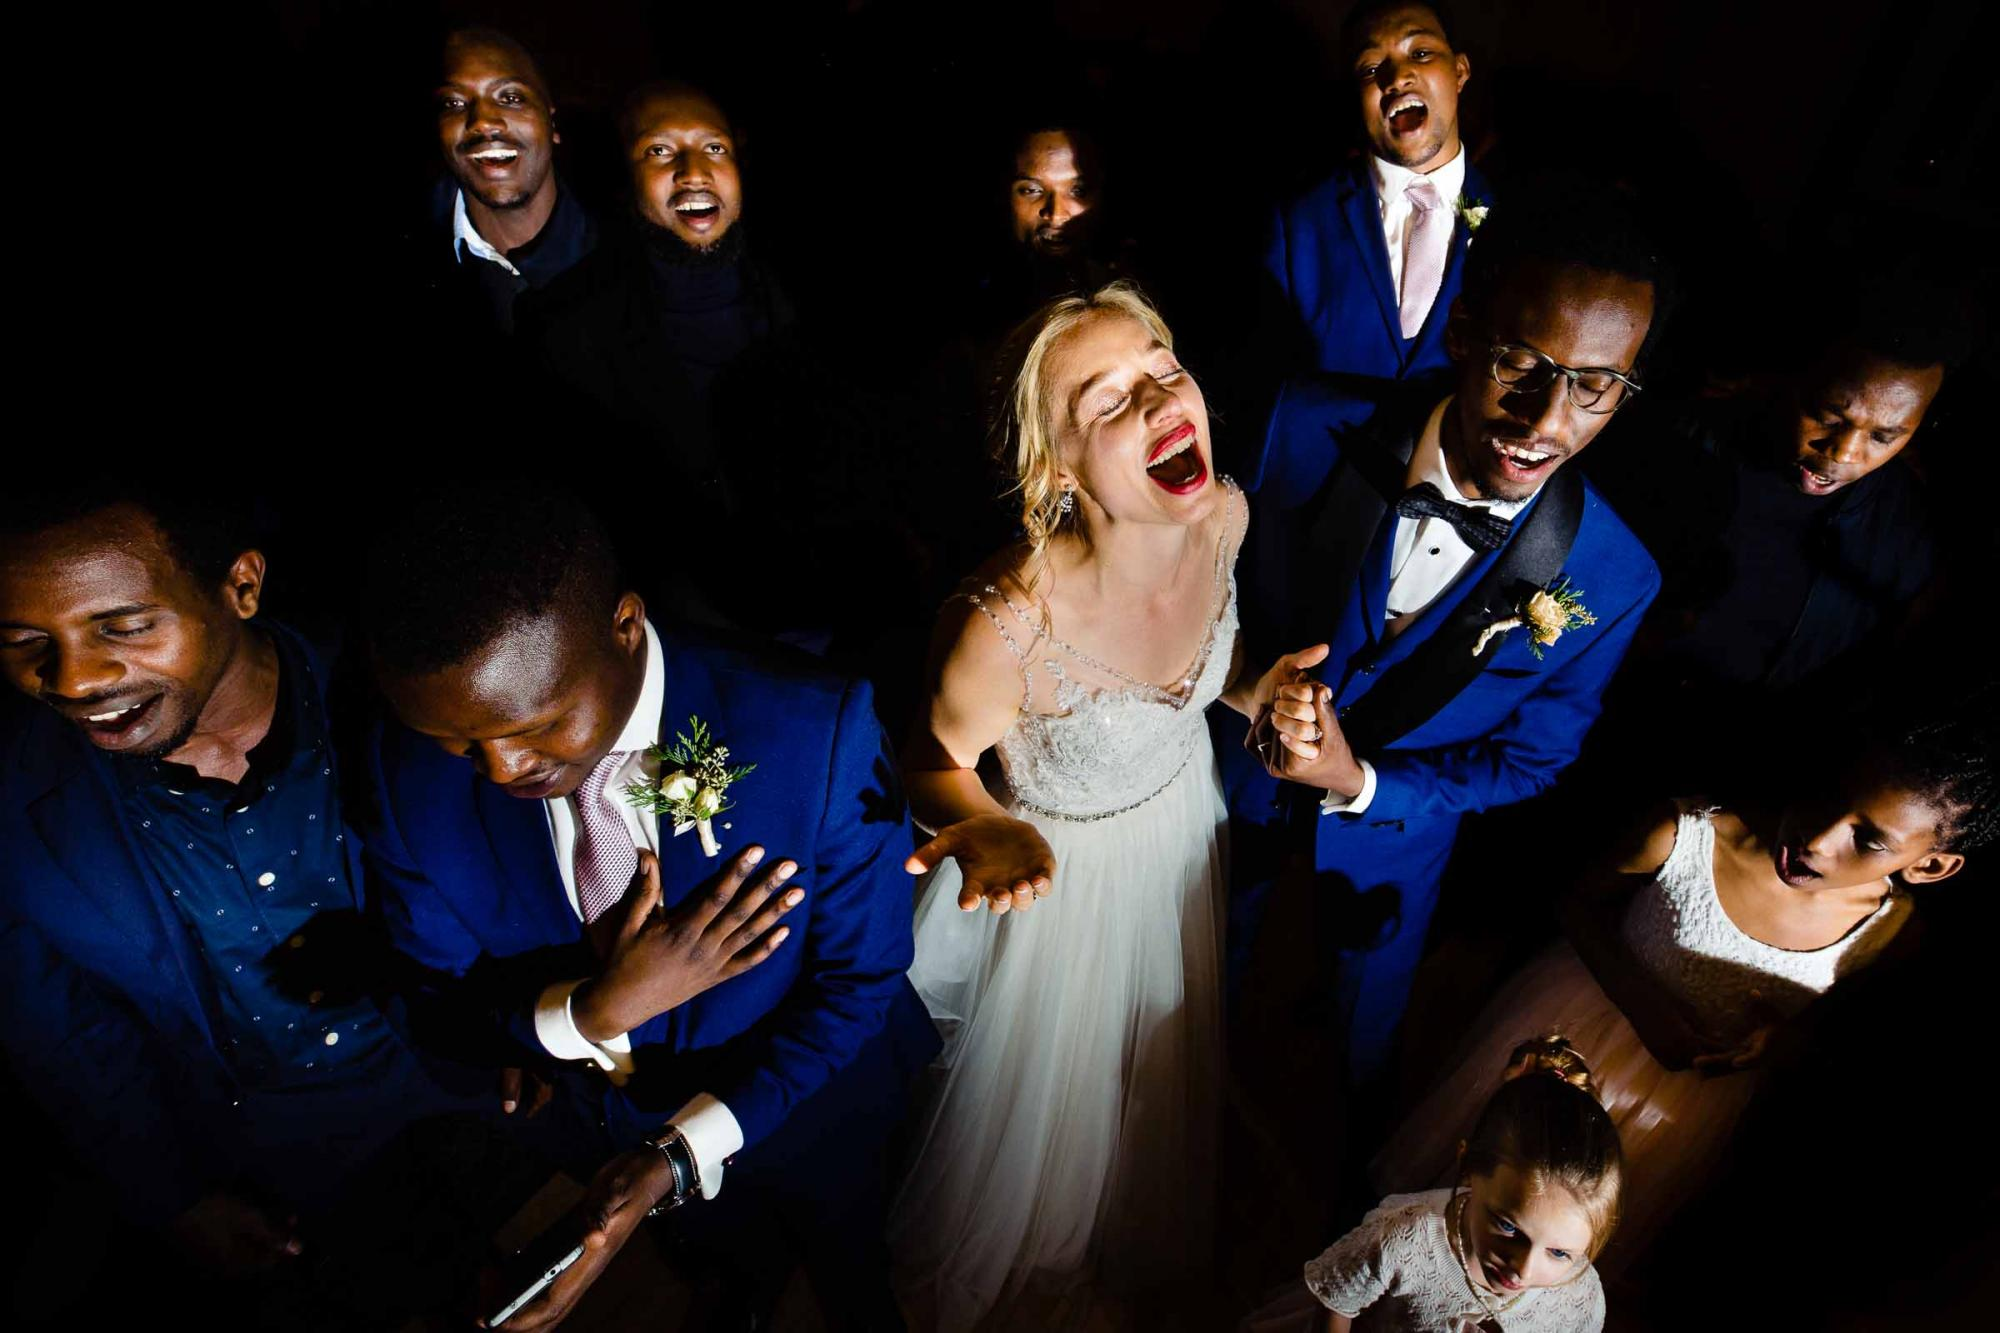 Bride singing with joy surrounded by a choir of friends photographed by Jos & Tree